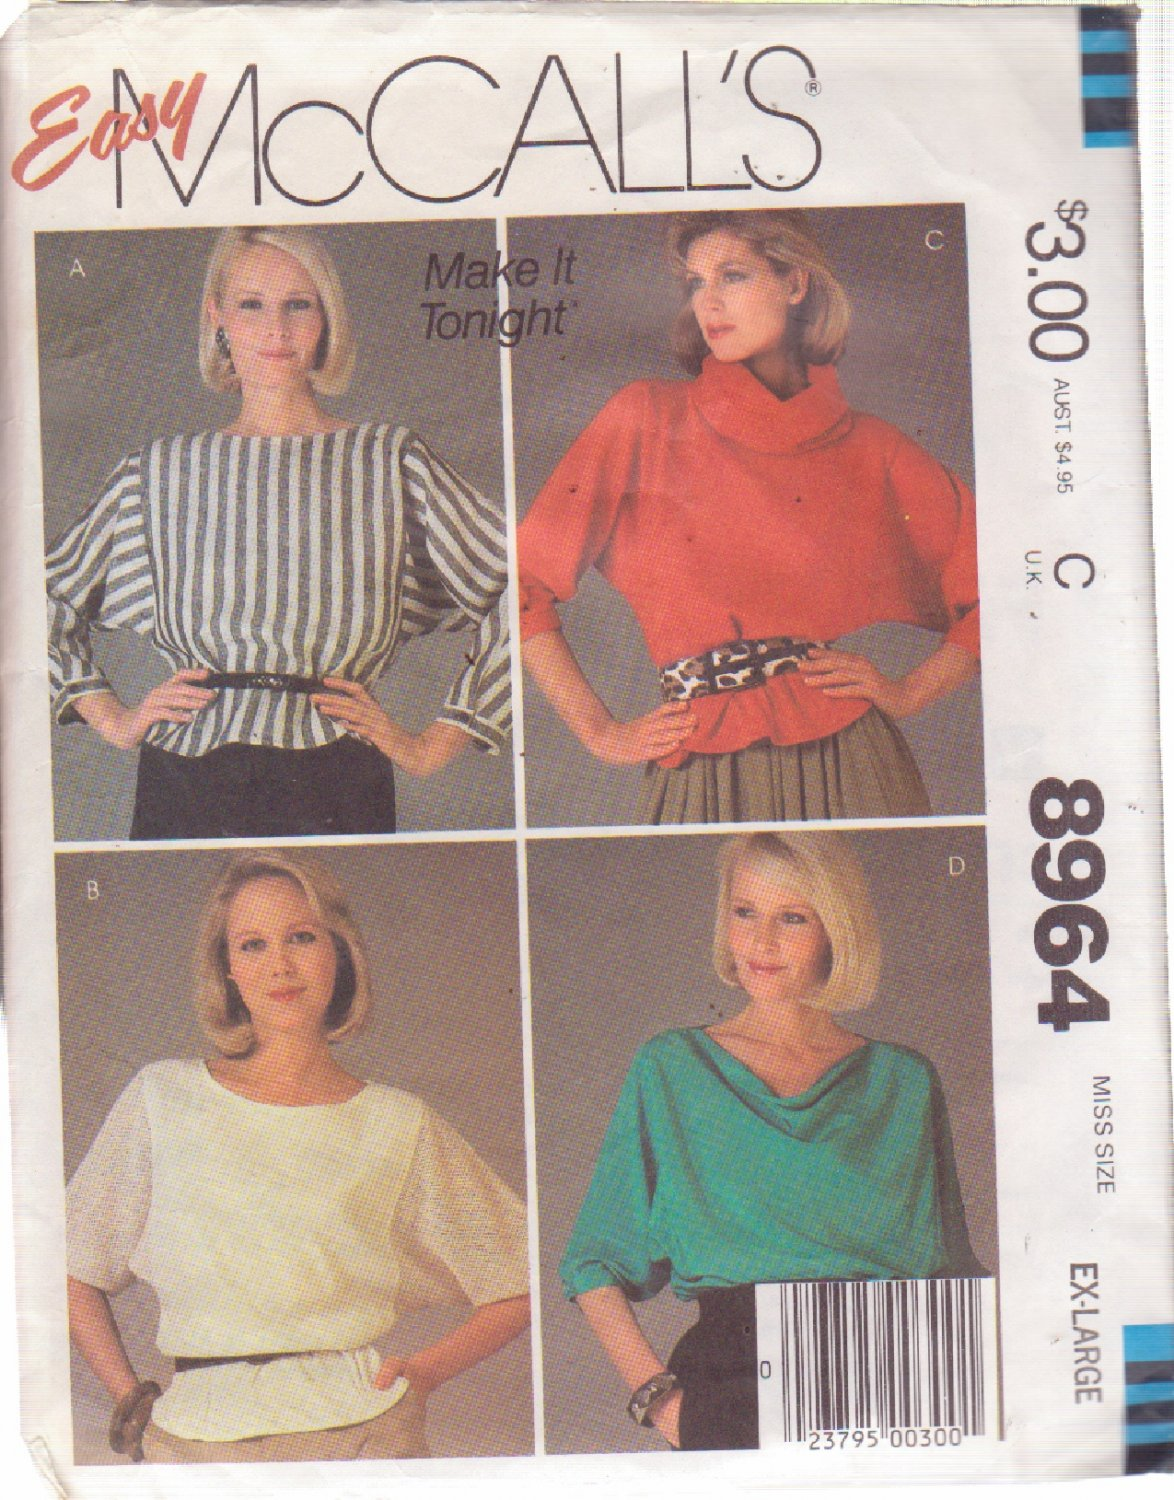 McCALL'S PATTERN 8964 SIZE XL 22/24 MISSES' BLOUSE OR TOPS IN 4 VARIATIONS